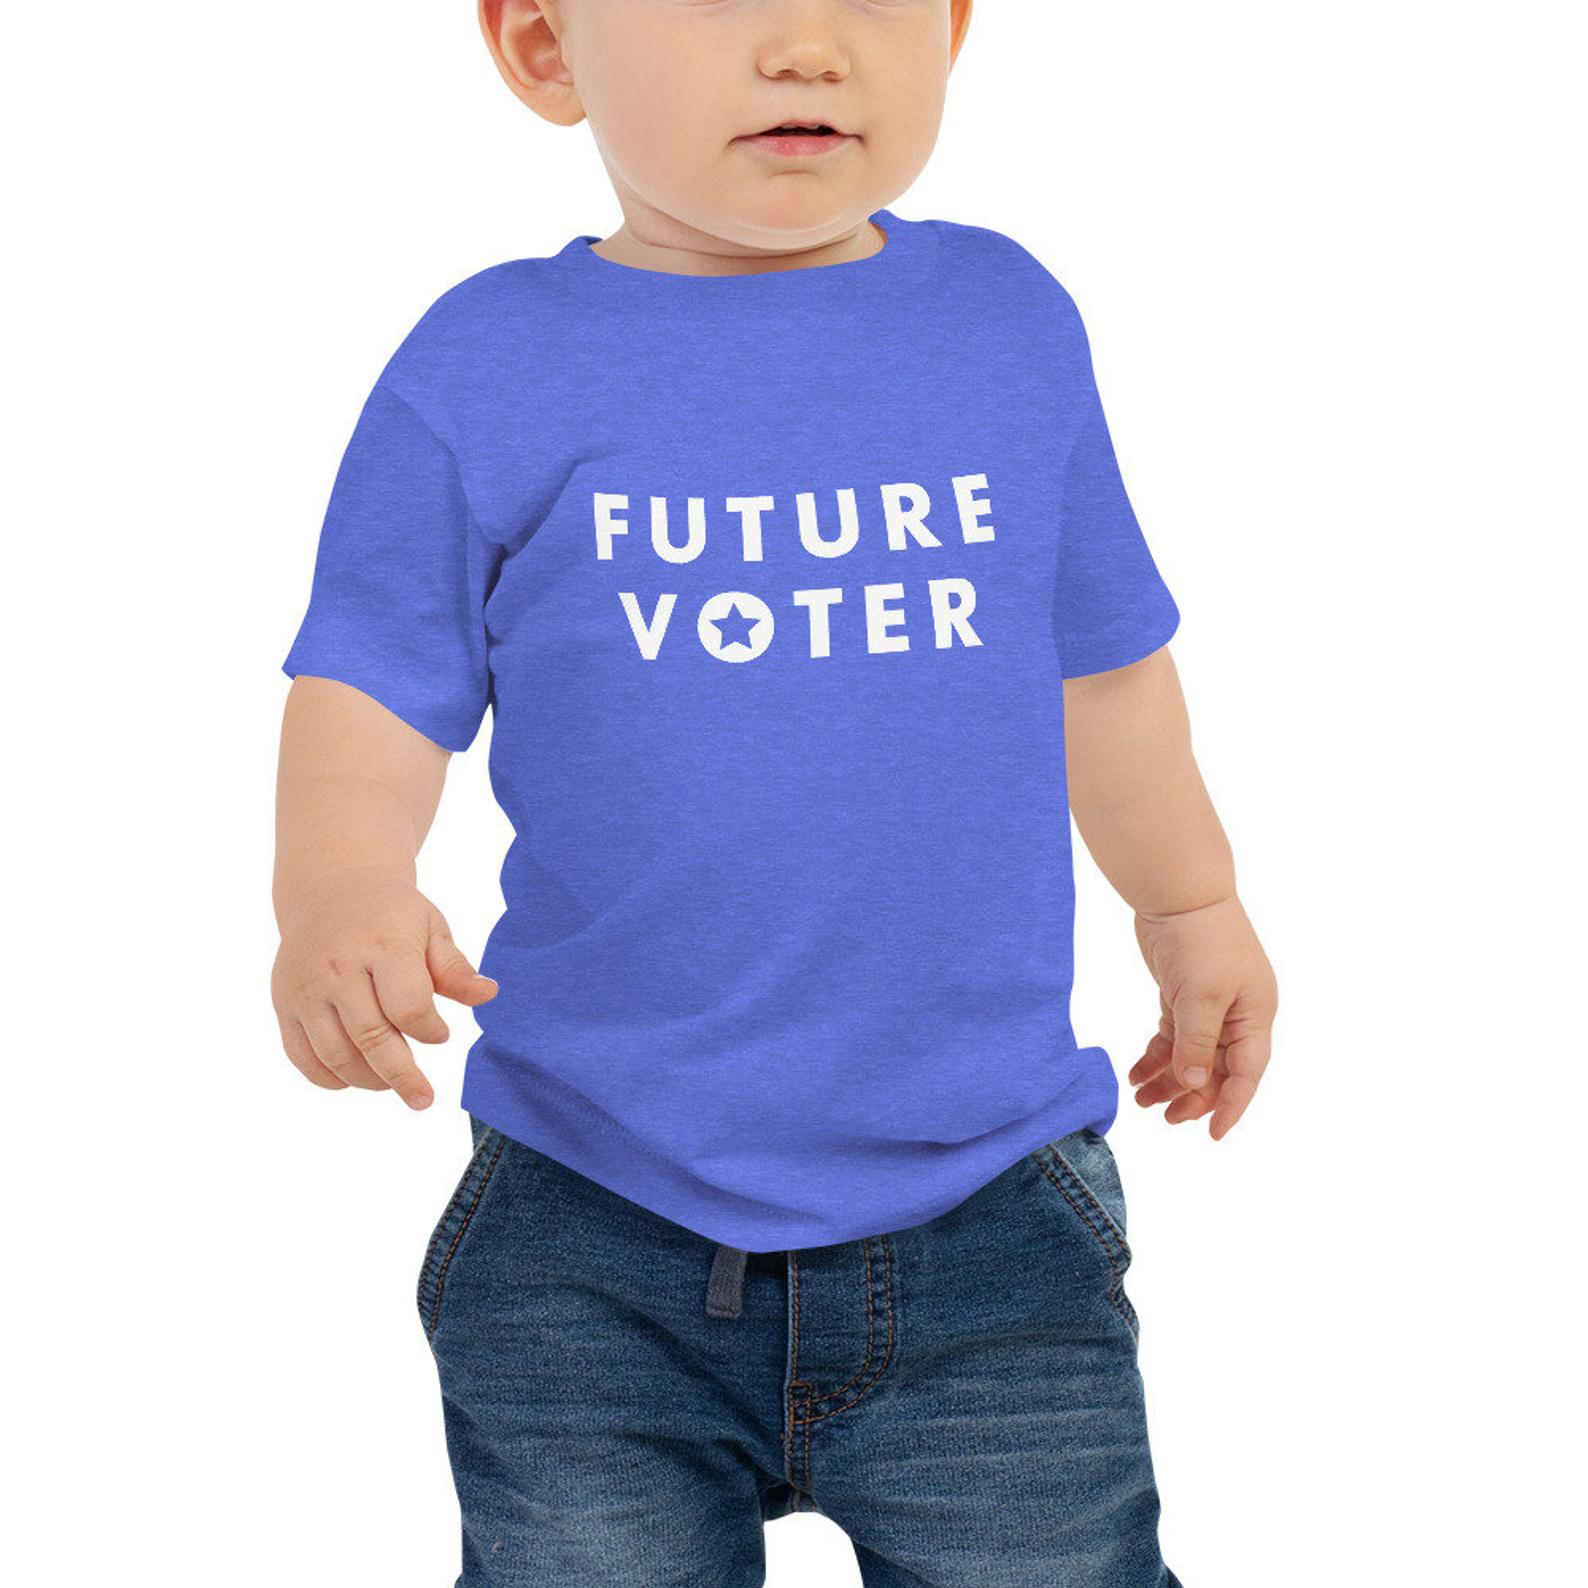 10 best baby and toddler holiday gifts from small businesses: Future Voter tee from Brave New World Designs | Small Business Holiday Gift Guide 2020